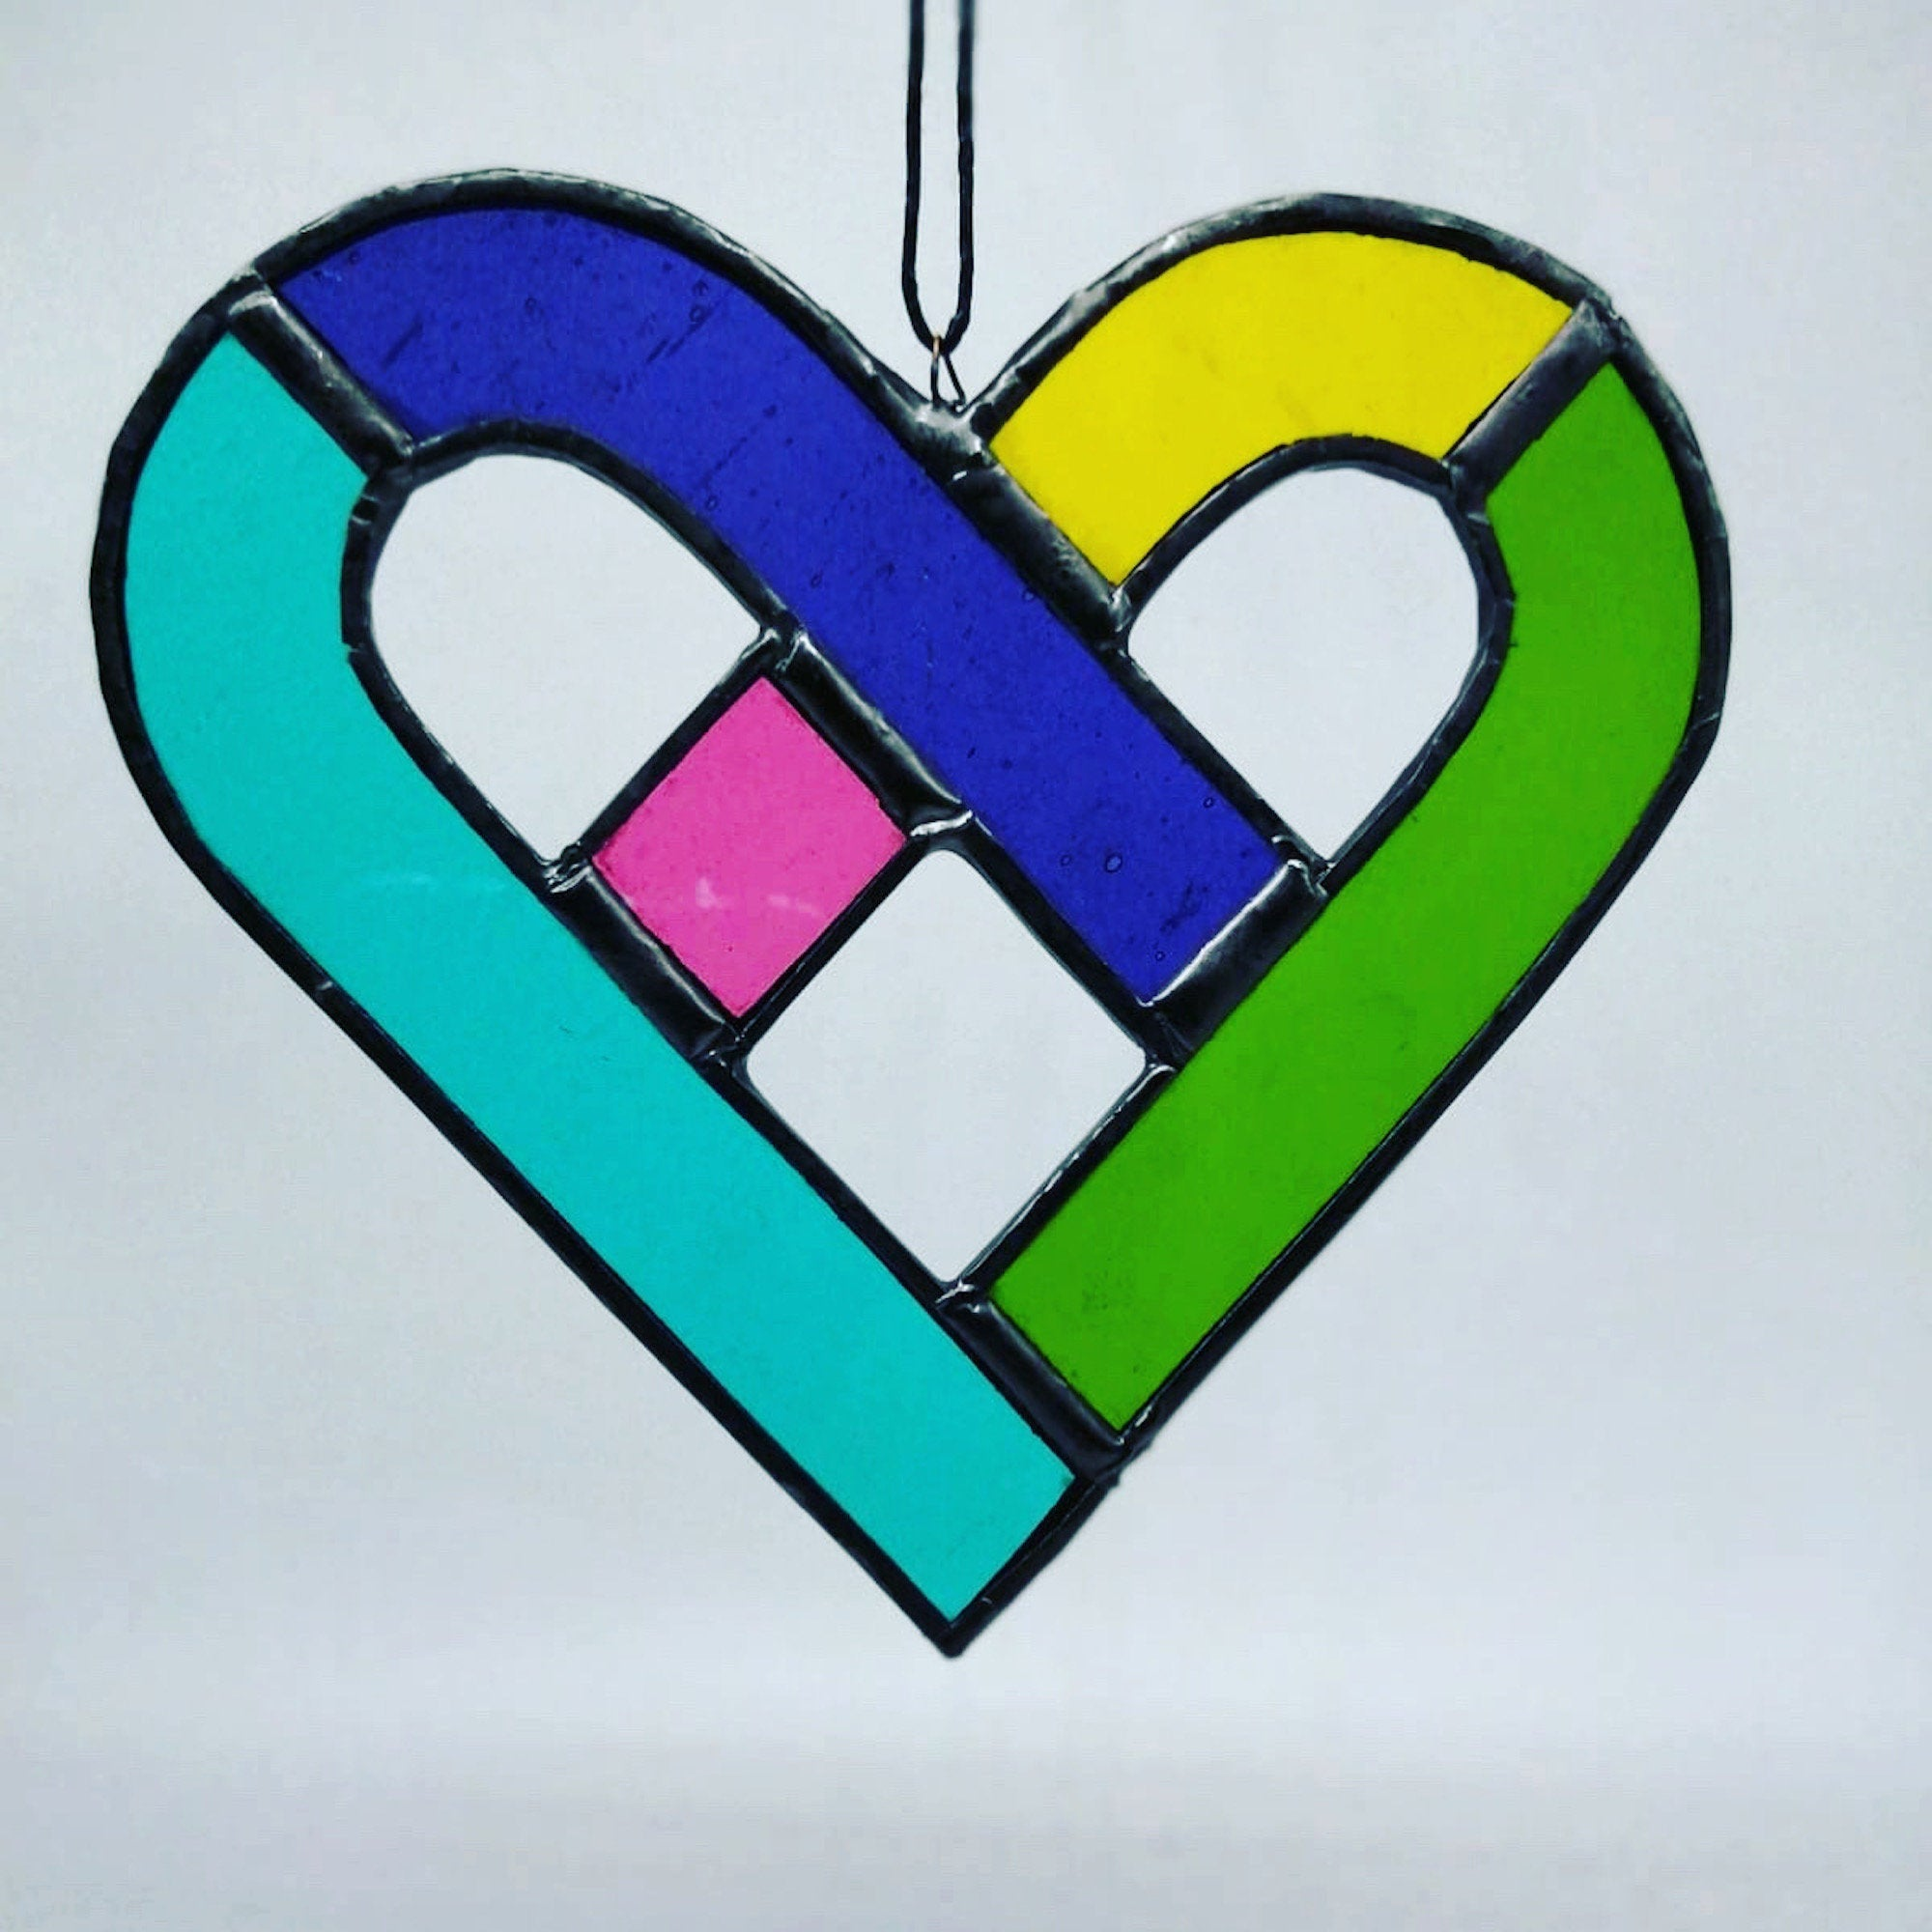 Celtic Heart Stained Glass | Rainbow | Sun catcher | Heart shaped | Unique gift | Made in Ireland  | Light catcher | Tiffany glass | Love